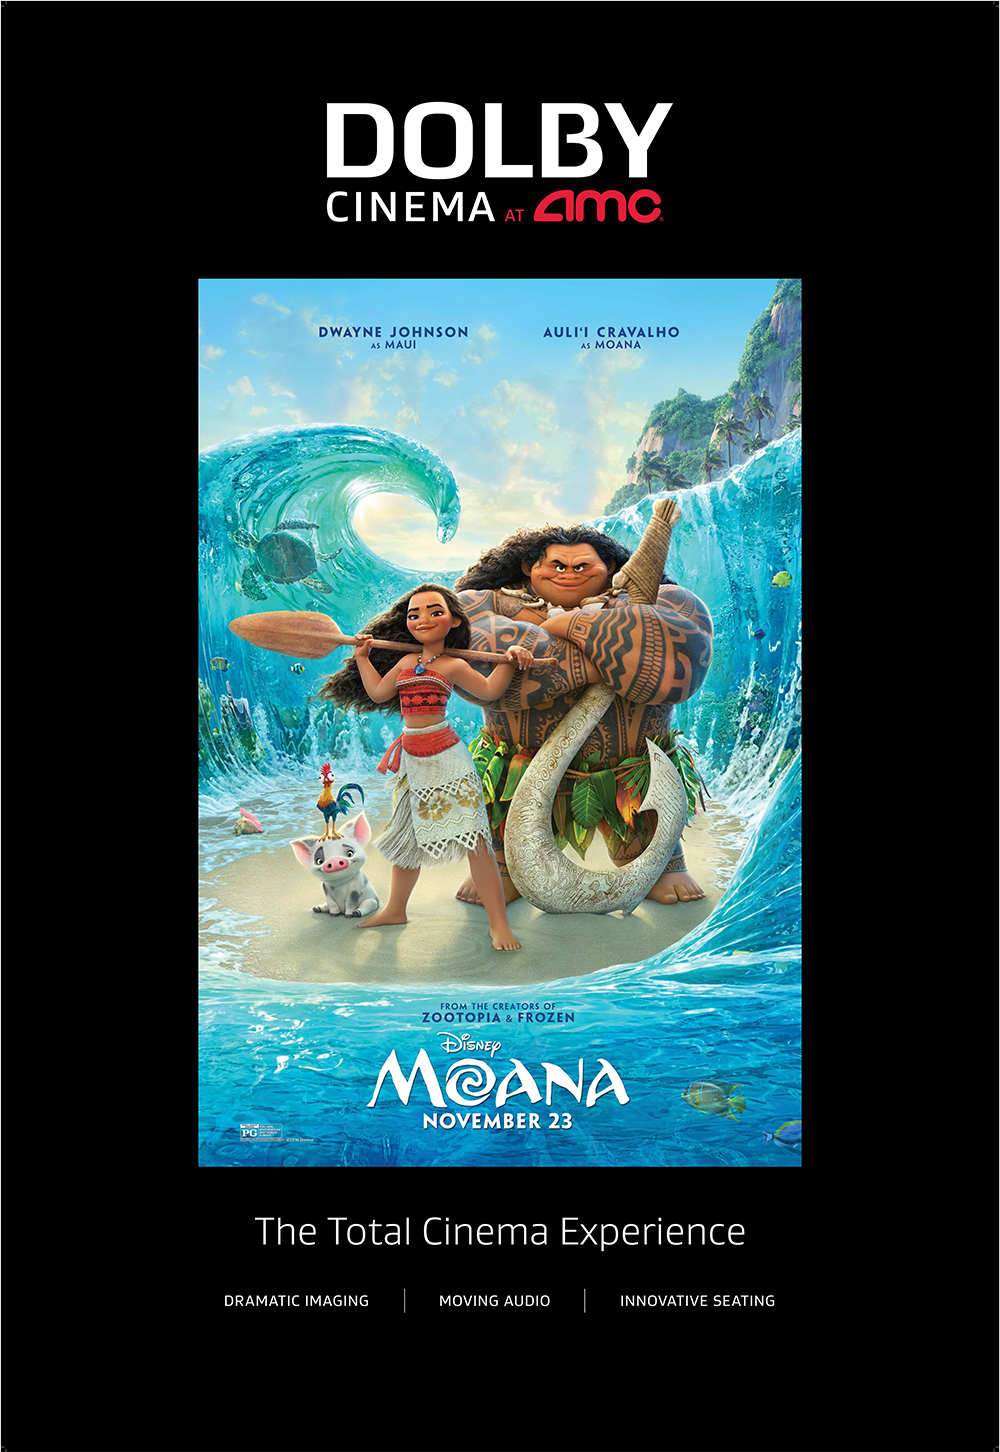 moana-dolby-cinema-at-amc